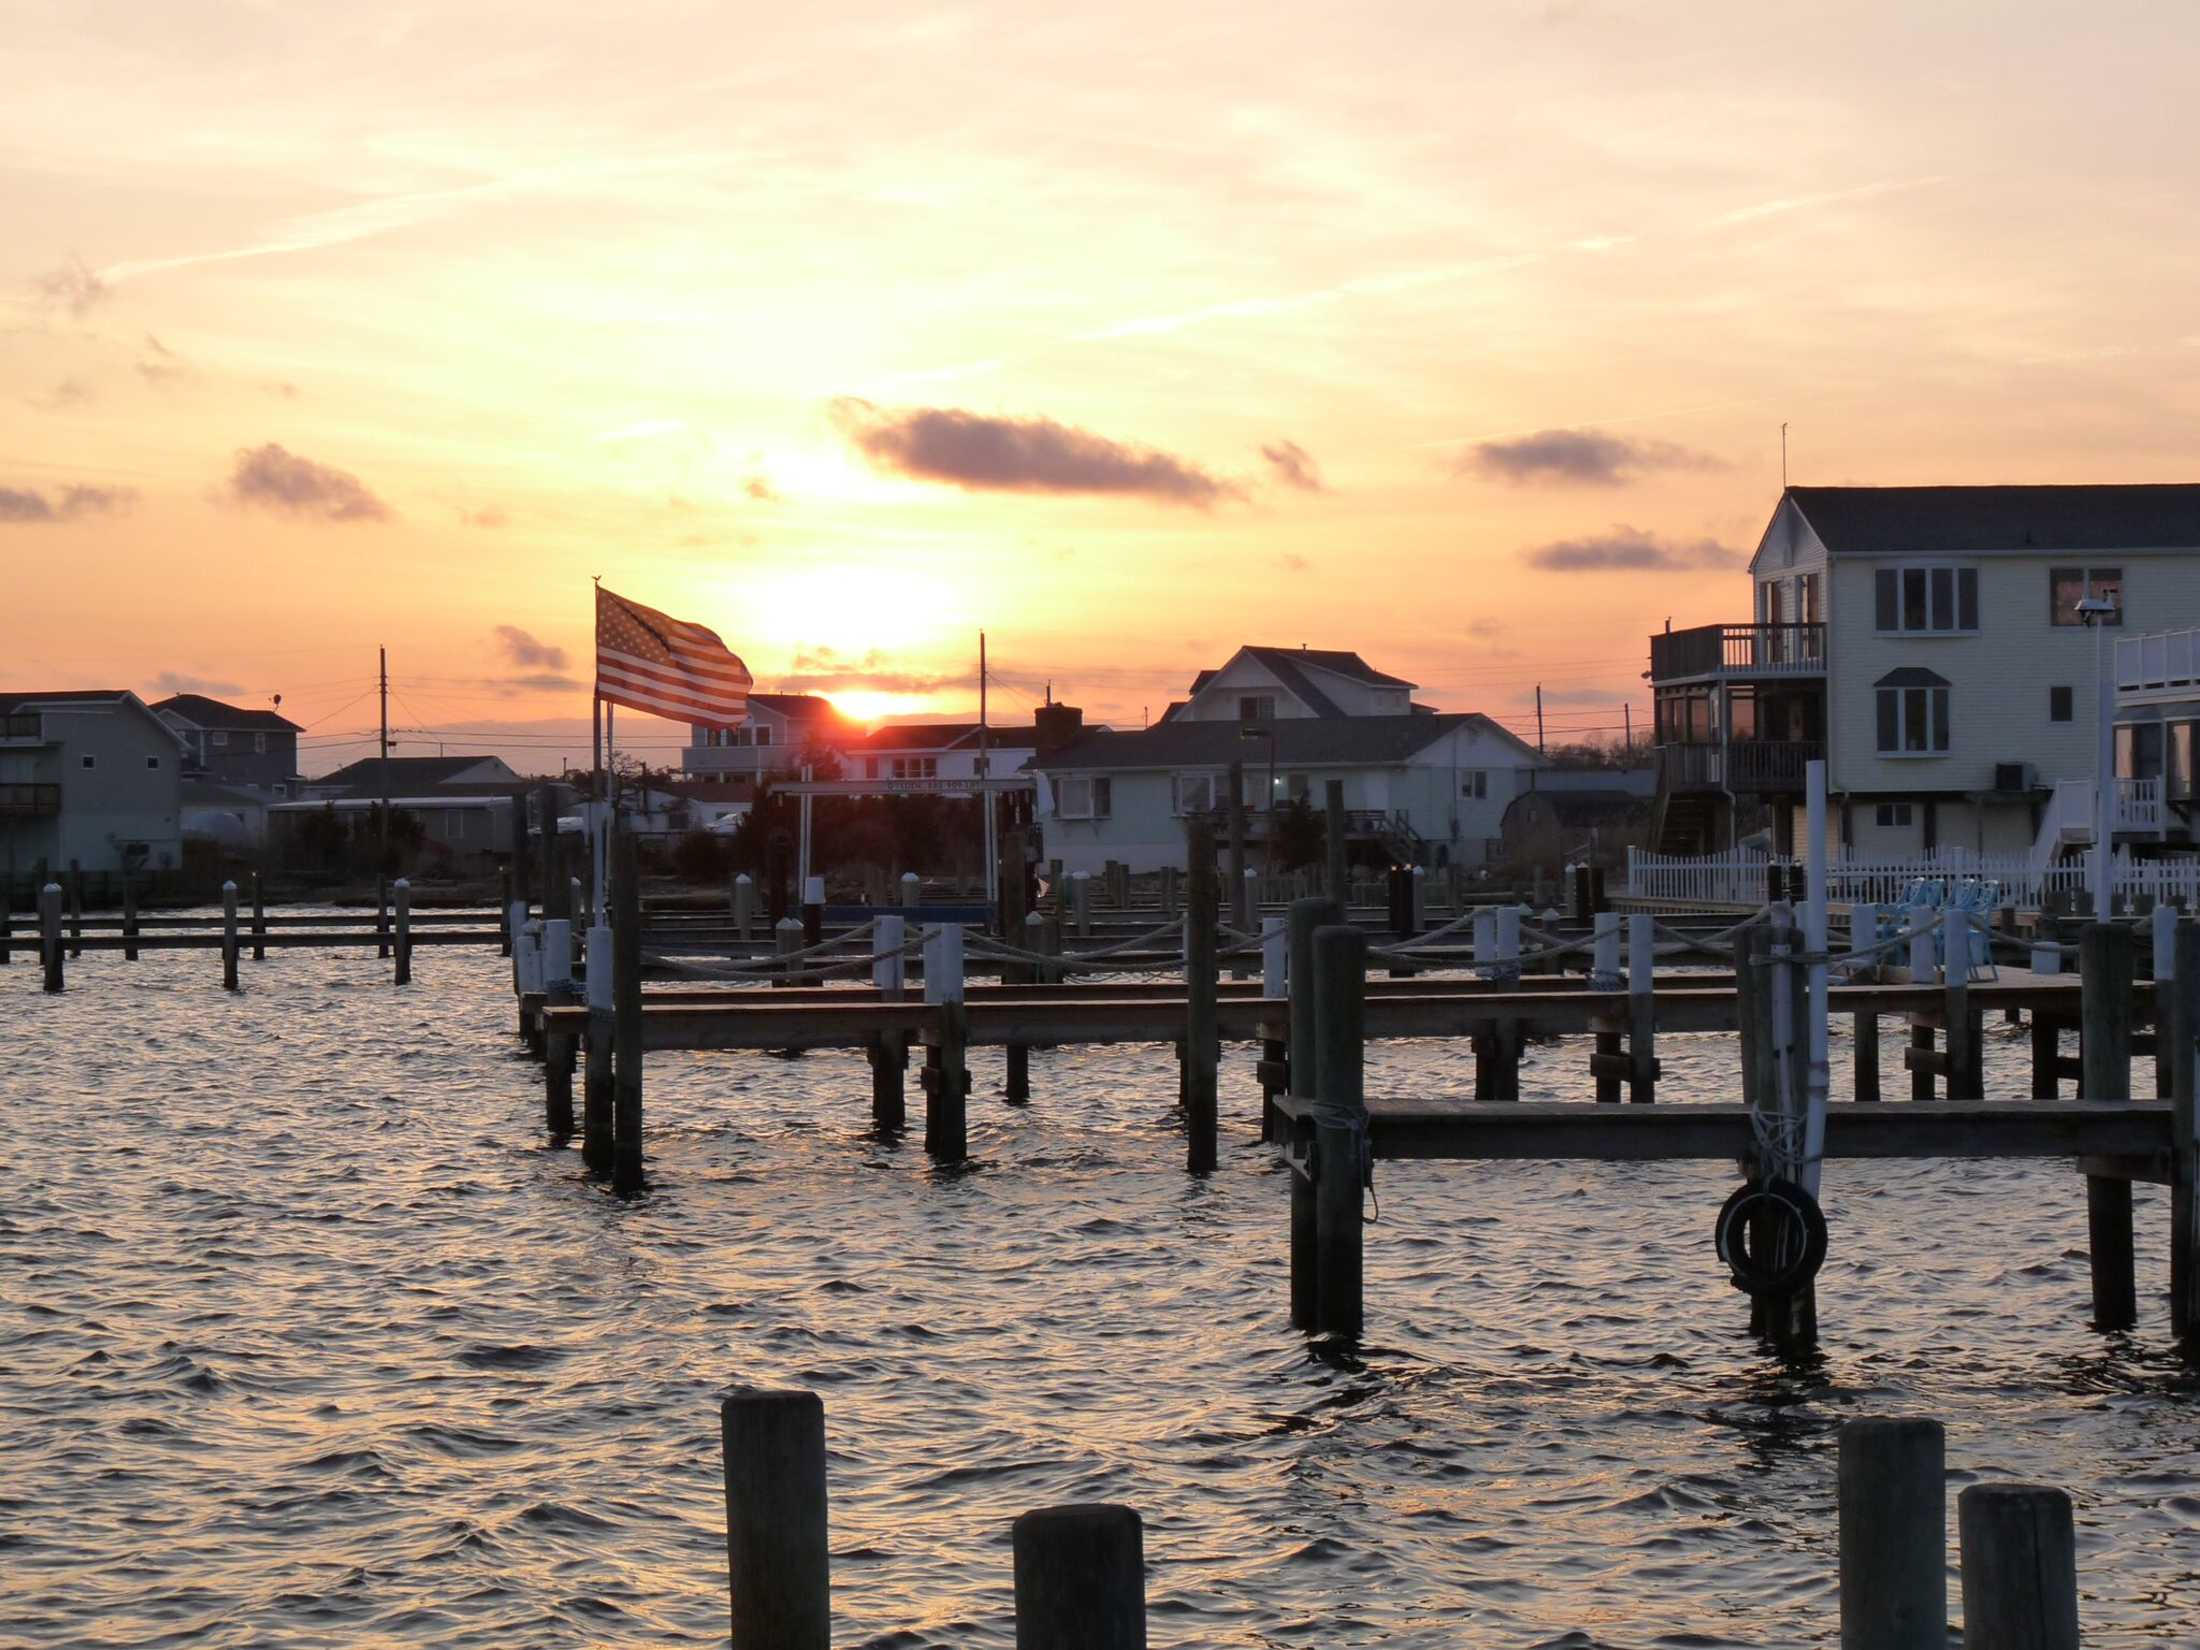 Victoria Bed And Breakfast Beach Haven Nj : J d thompson inn bed and breakfast tuckerton new jersey